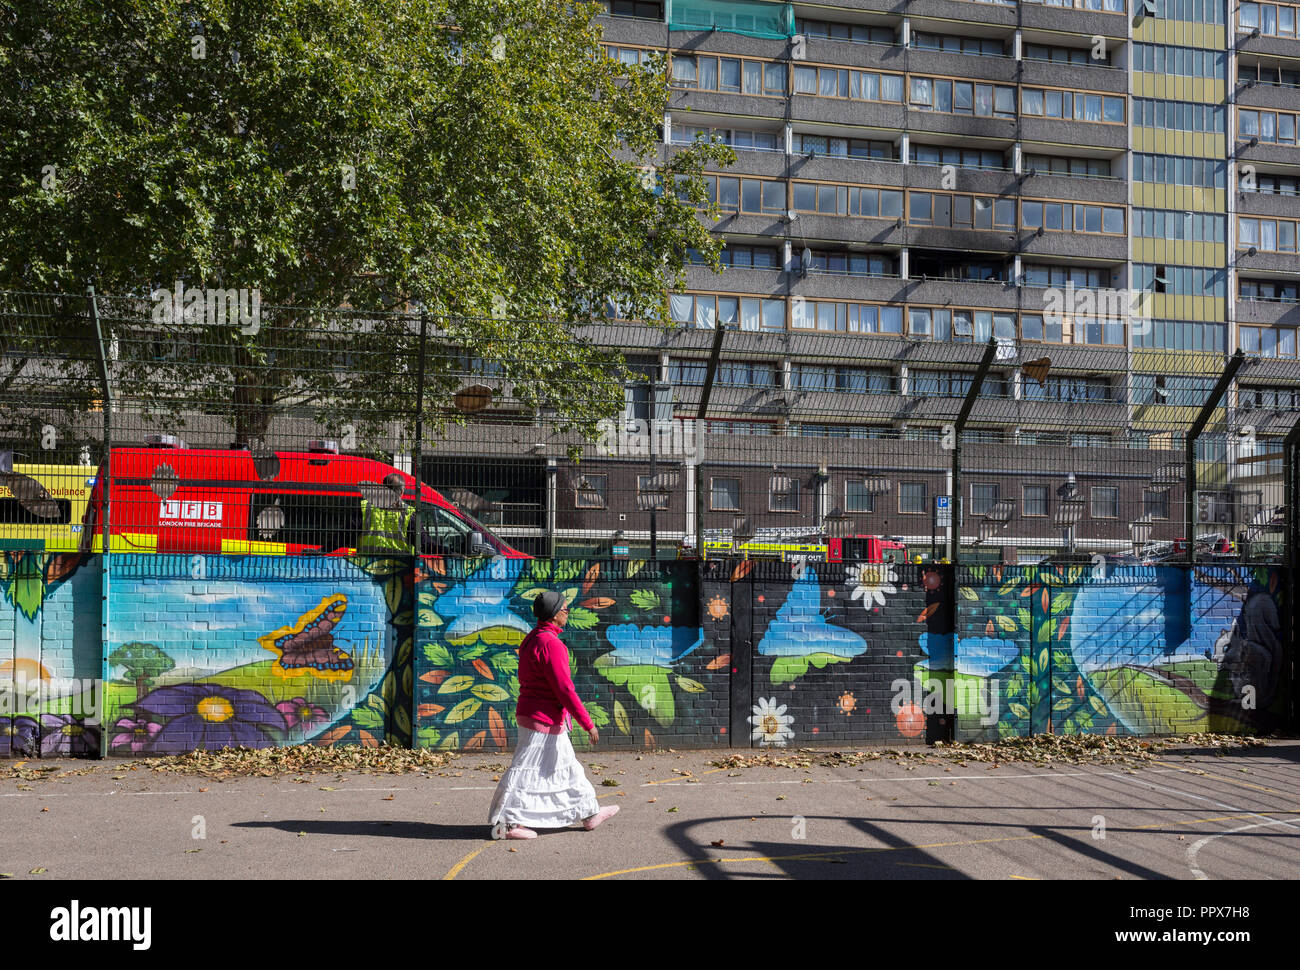 A local estate resident walks past smoke damage aftermath on the exterior of a flat fire in one of the two Wendover blocks in Alsace Road on the Aylesbury Estate, Southwark SE17, on 24th September 2018, in London, England. Part of a split level flat on the fourth and fifth floor of the 15-storey block was damaged. One woman and two children left the property before the Brigade arrived. They were treated at the scene for smoke inhalation by London Ambulance Service crews and taken too hospital. Another man was also treated at the scene for smoke inhalation. - Stock Image